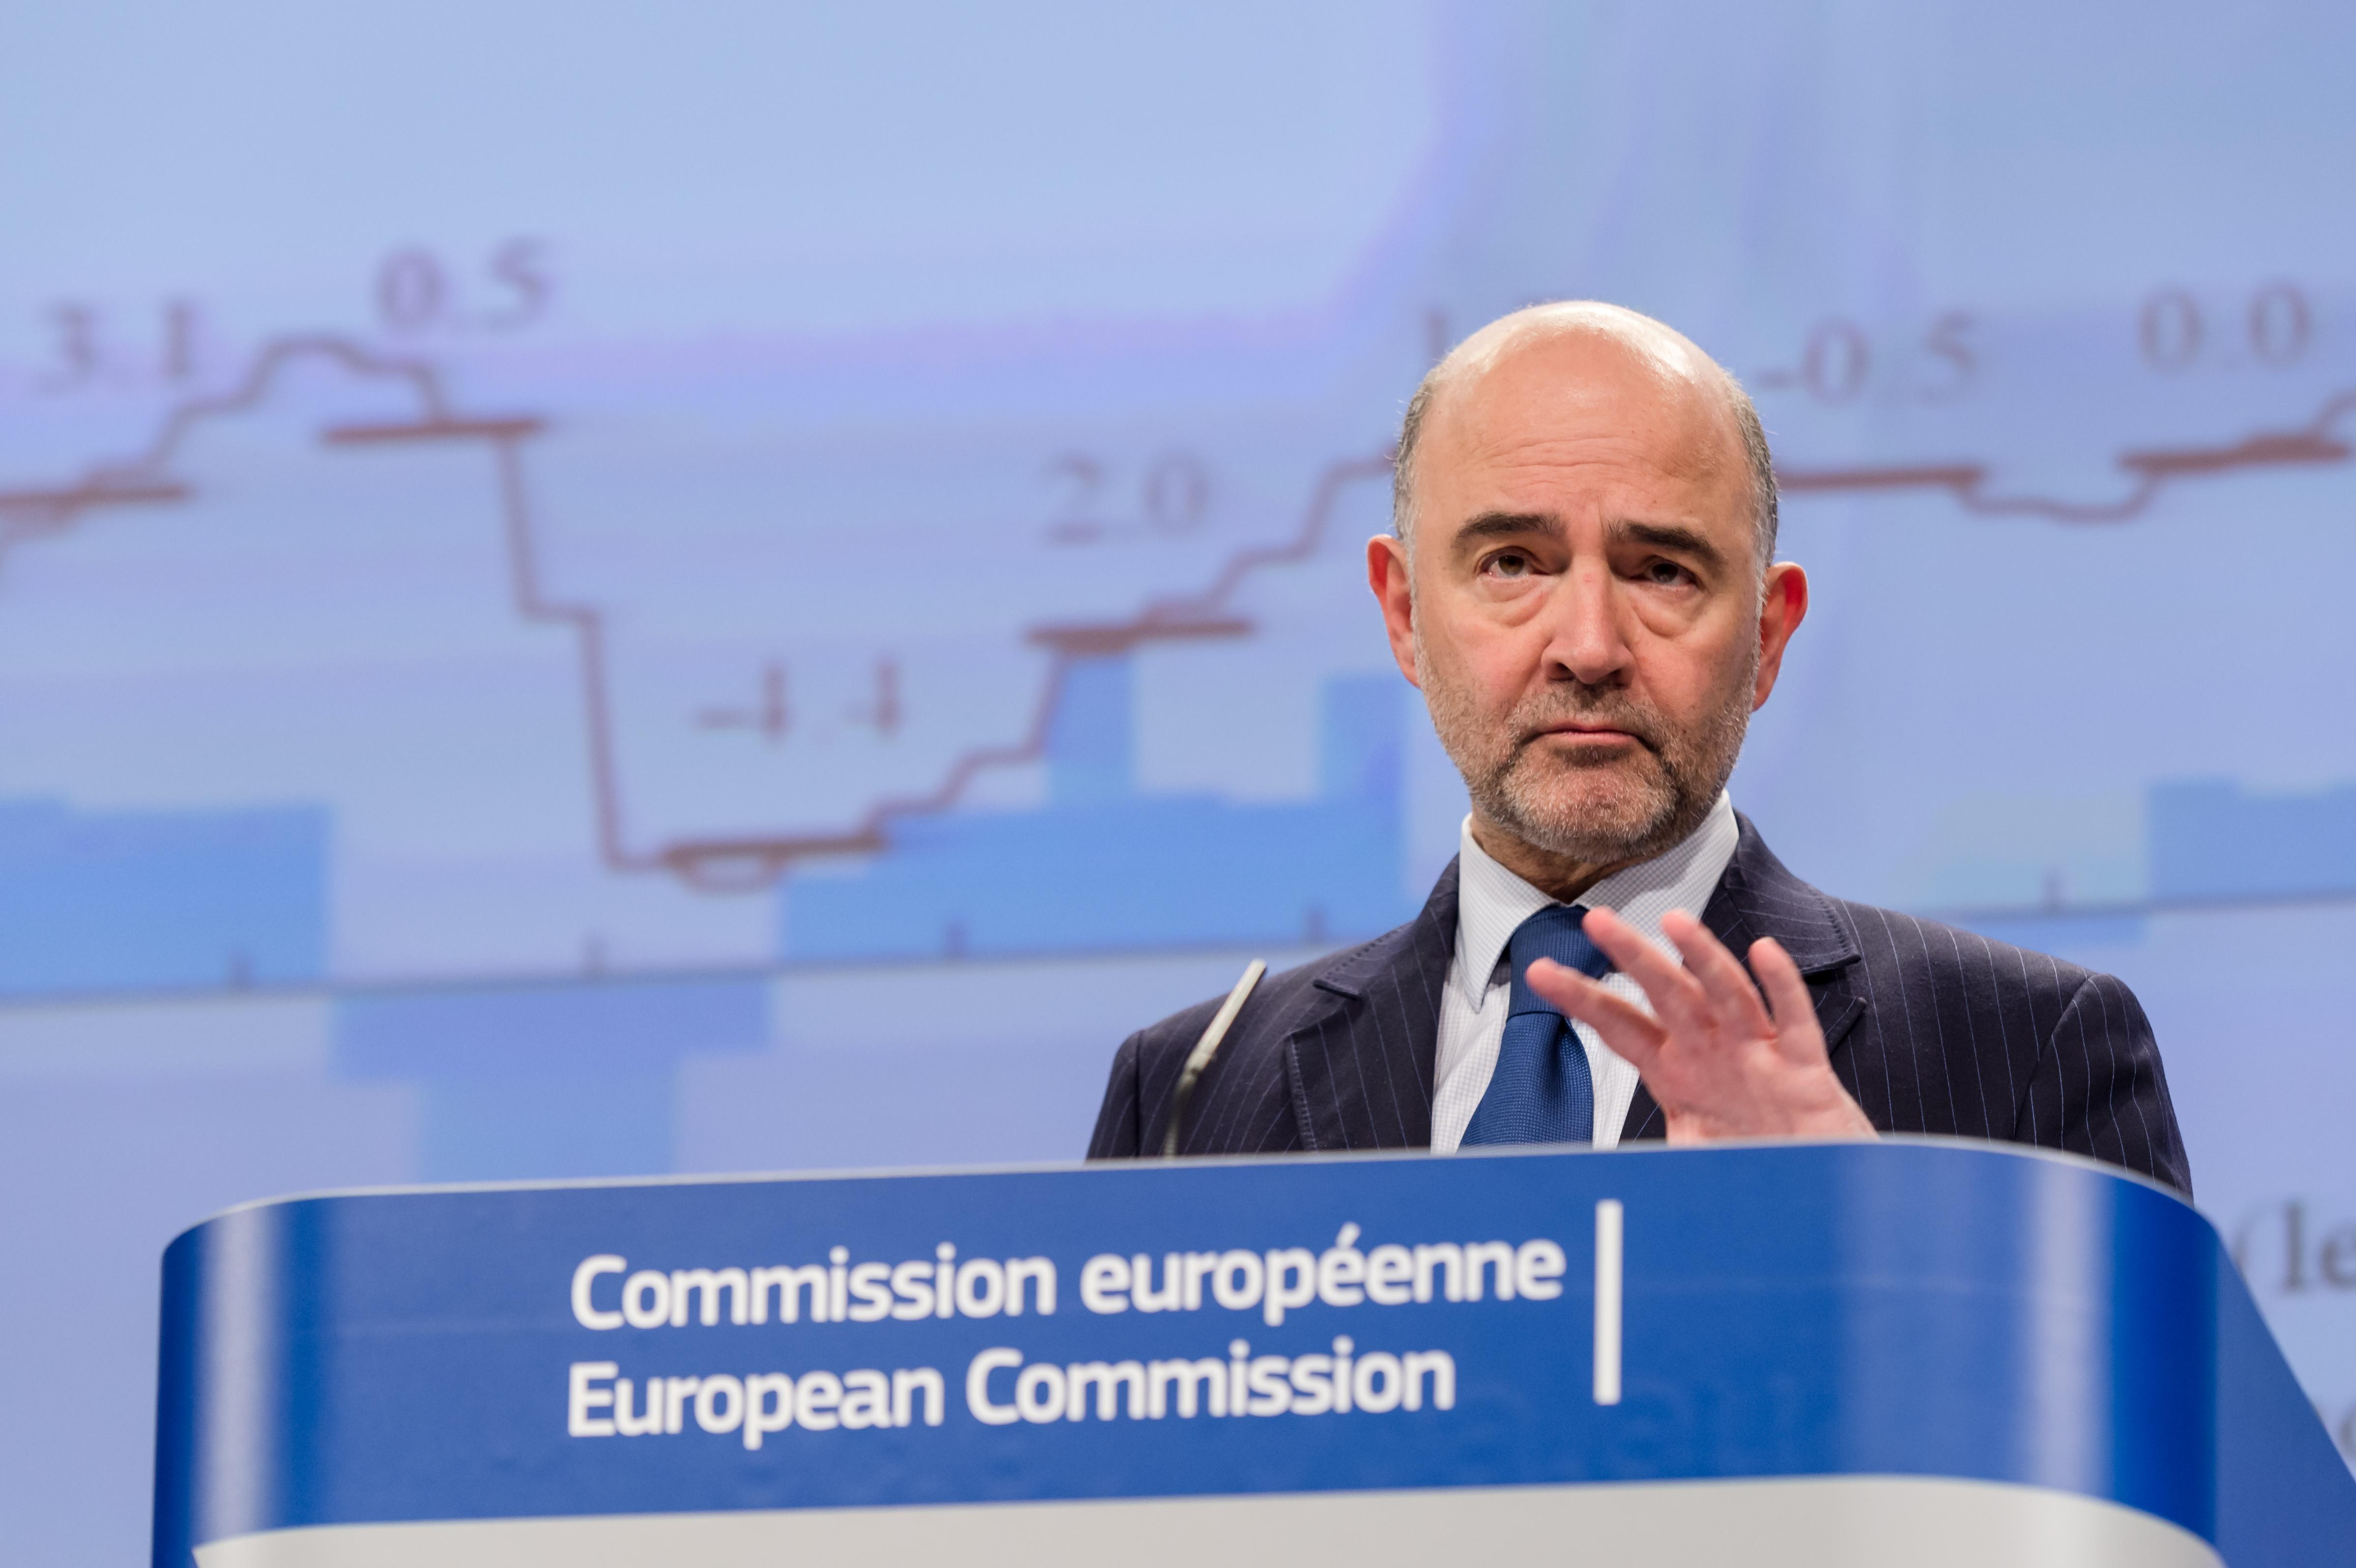 EU raises eurozone forecast despite bleaker Greek outlook